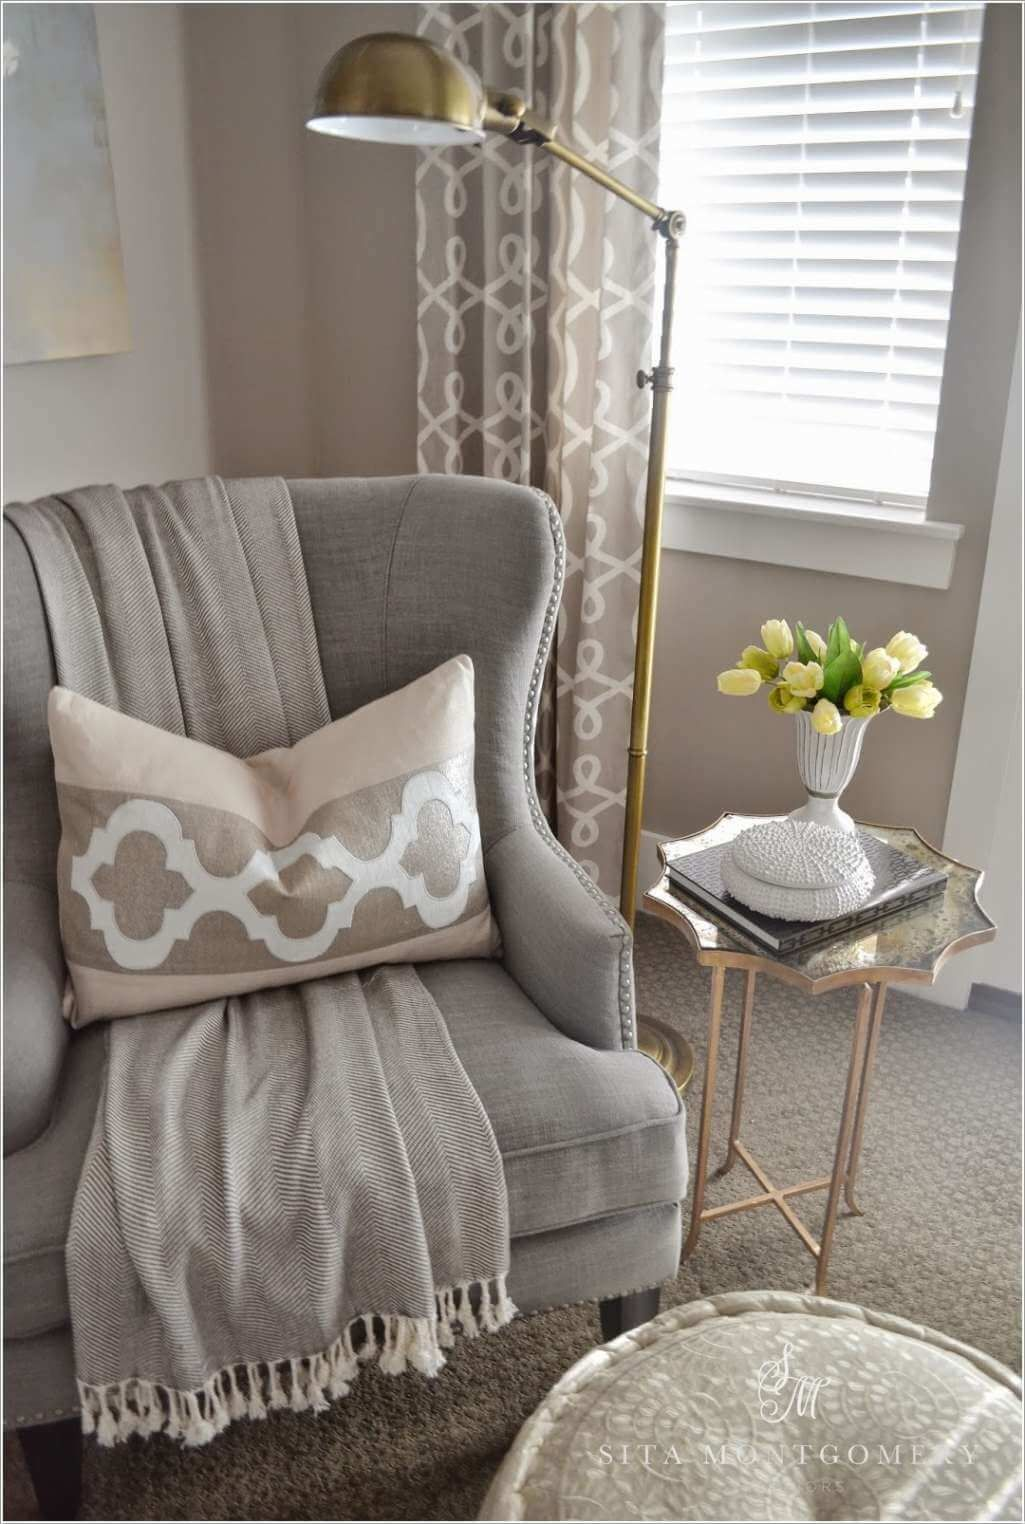 Cozy master bedroom decor  Ways to Cozy Up a Reading Nook for a Comfortable Reading Time